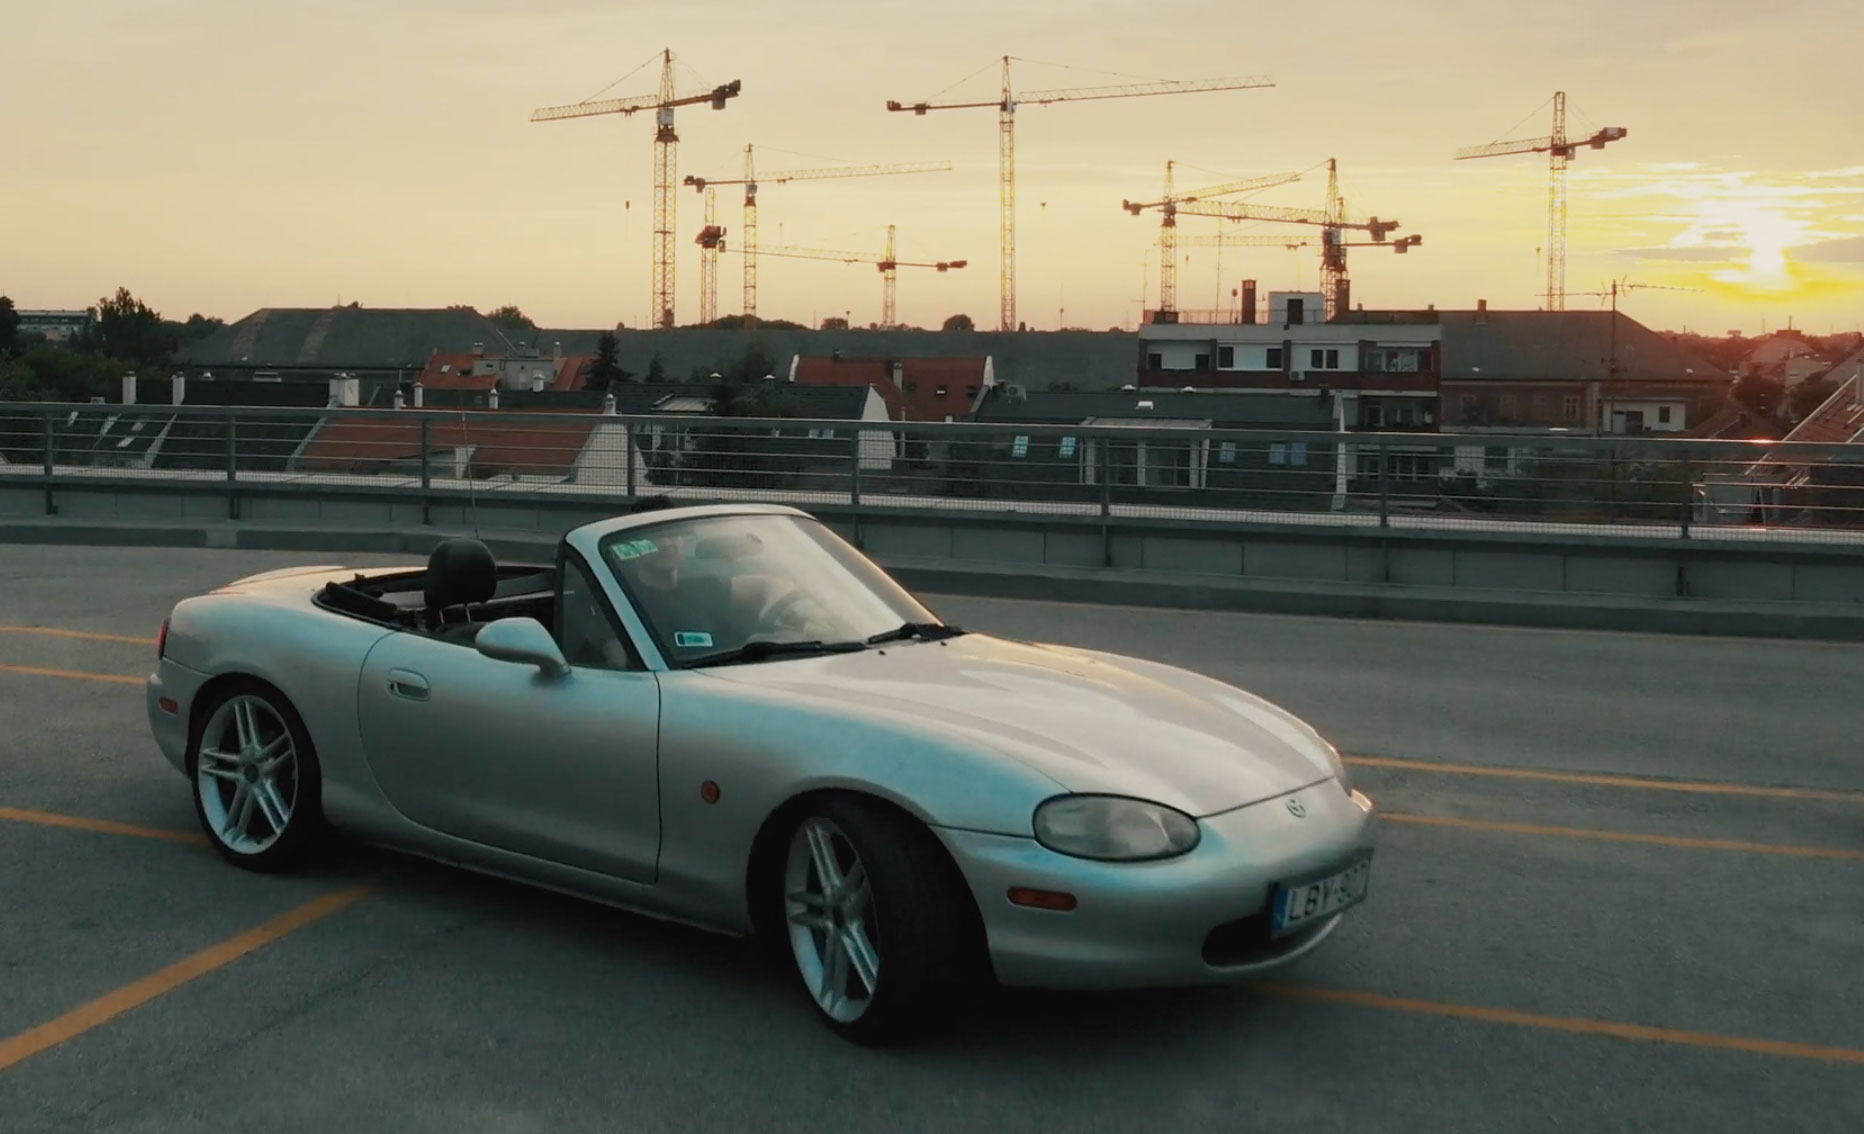 mx5-miata-in-sunset